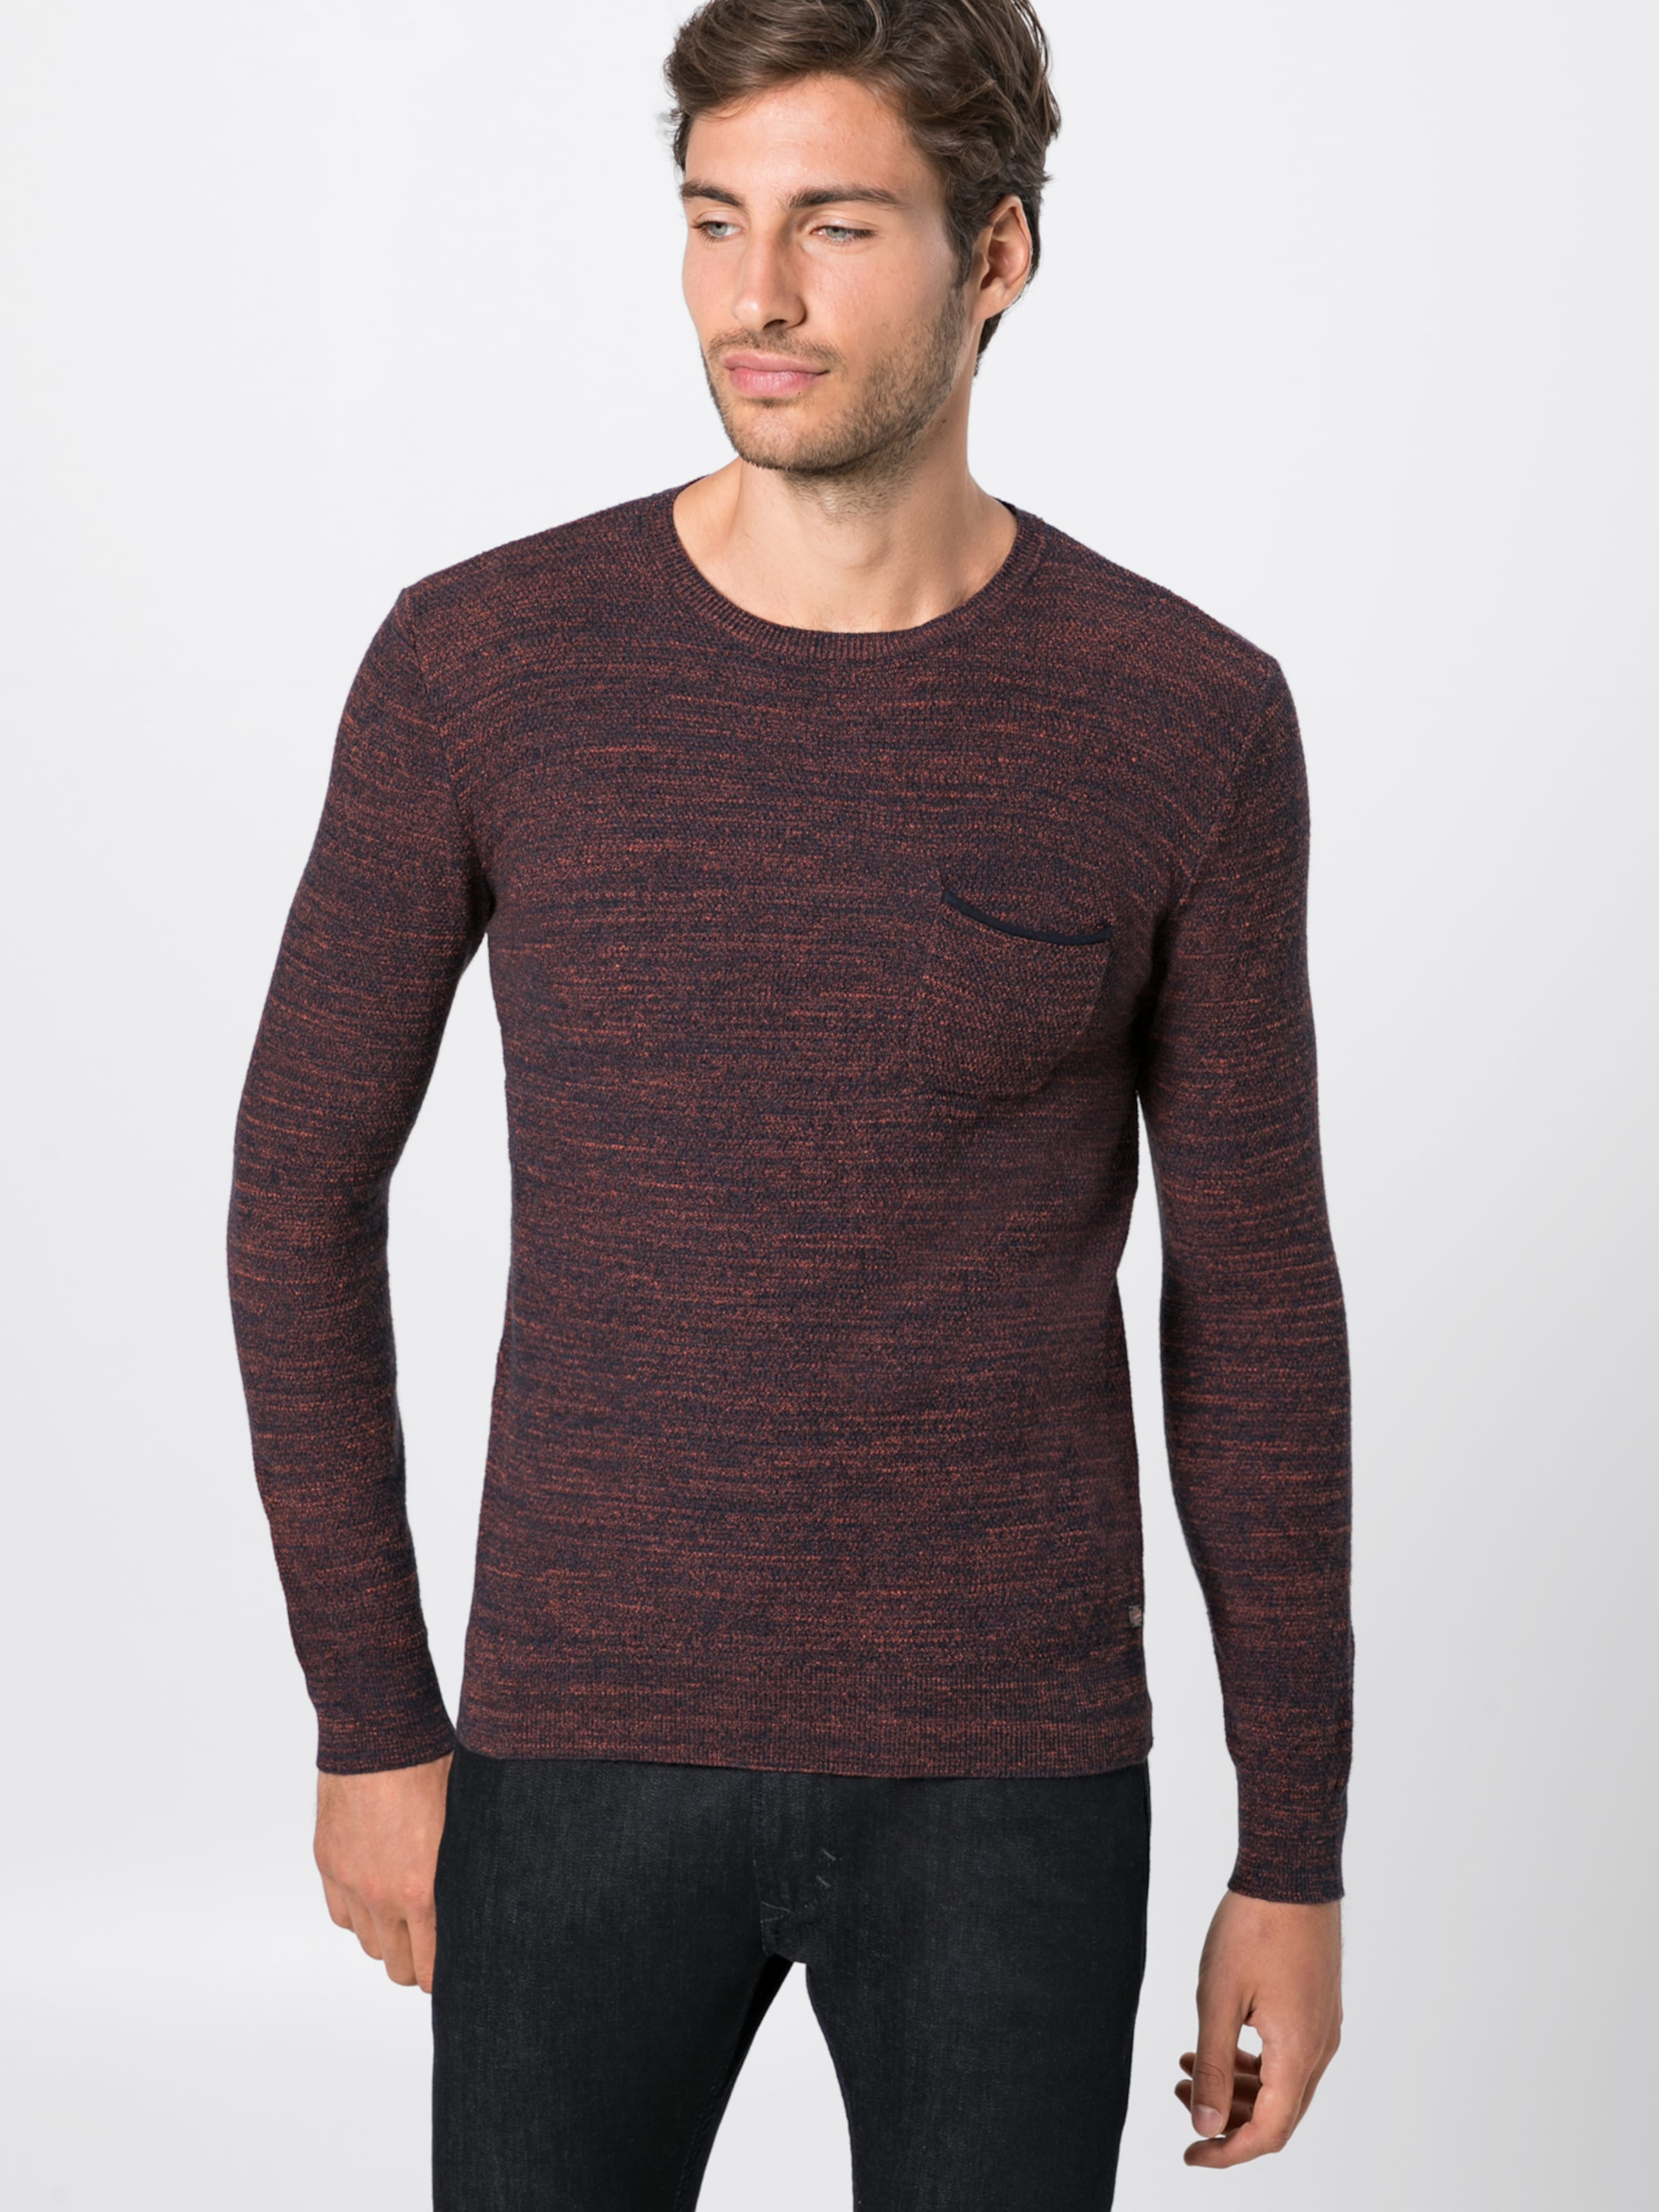 Tom Weinrot Tom In Tailor Tailor Pullover Weinrot In Pullover 8XONwPkn0